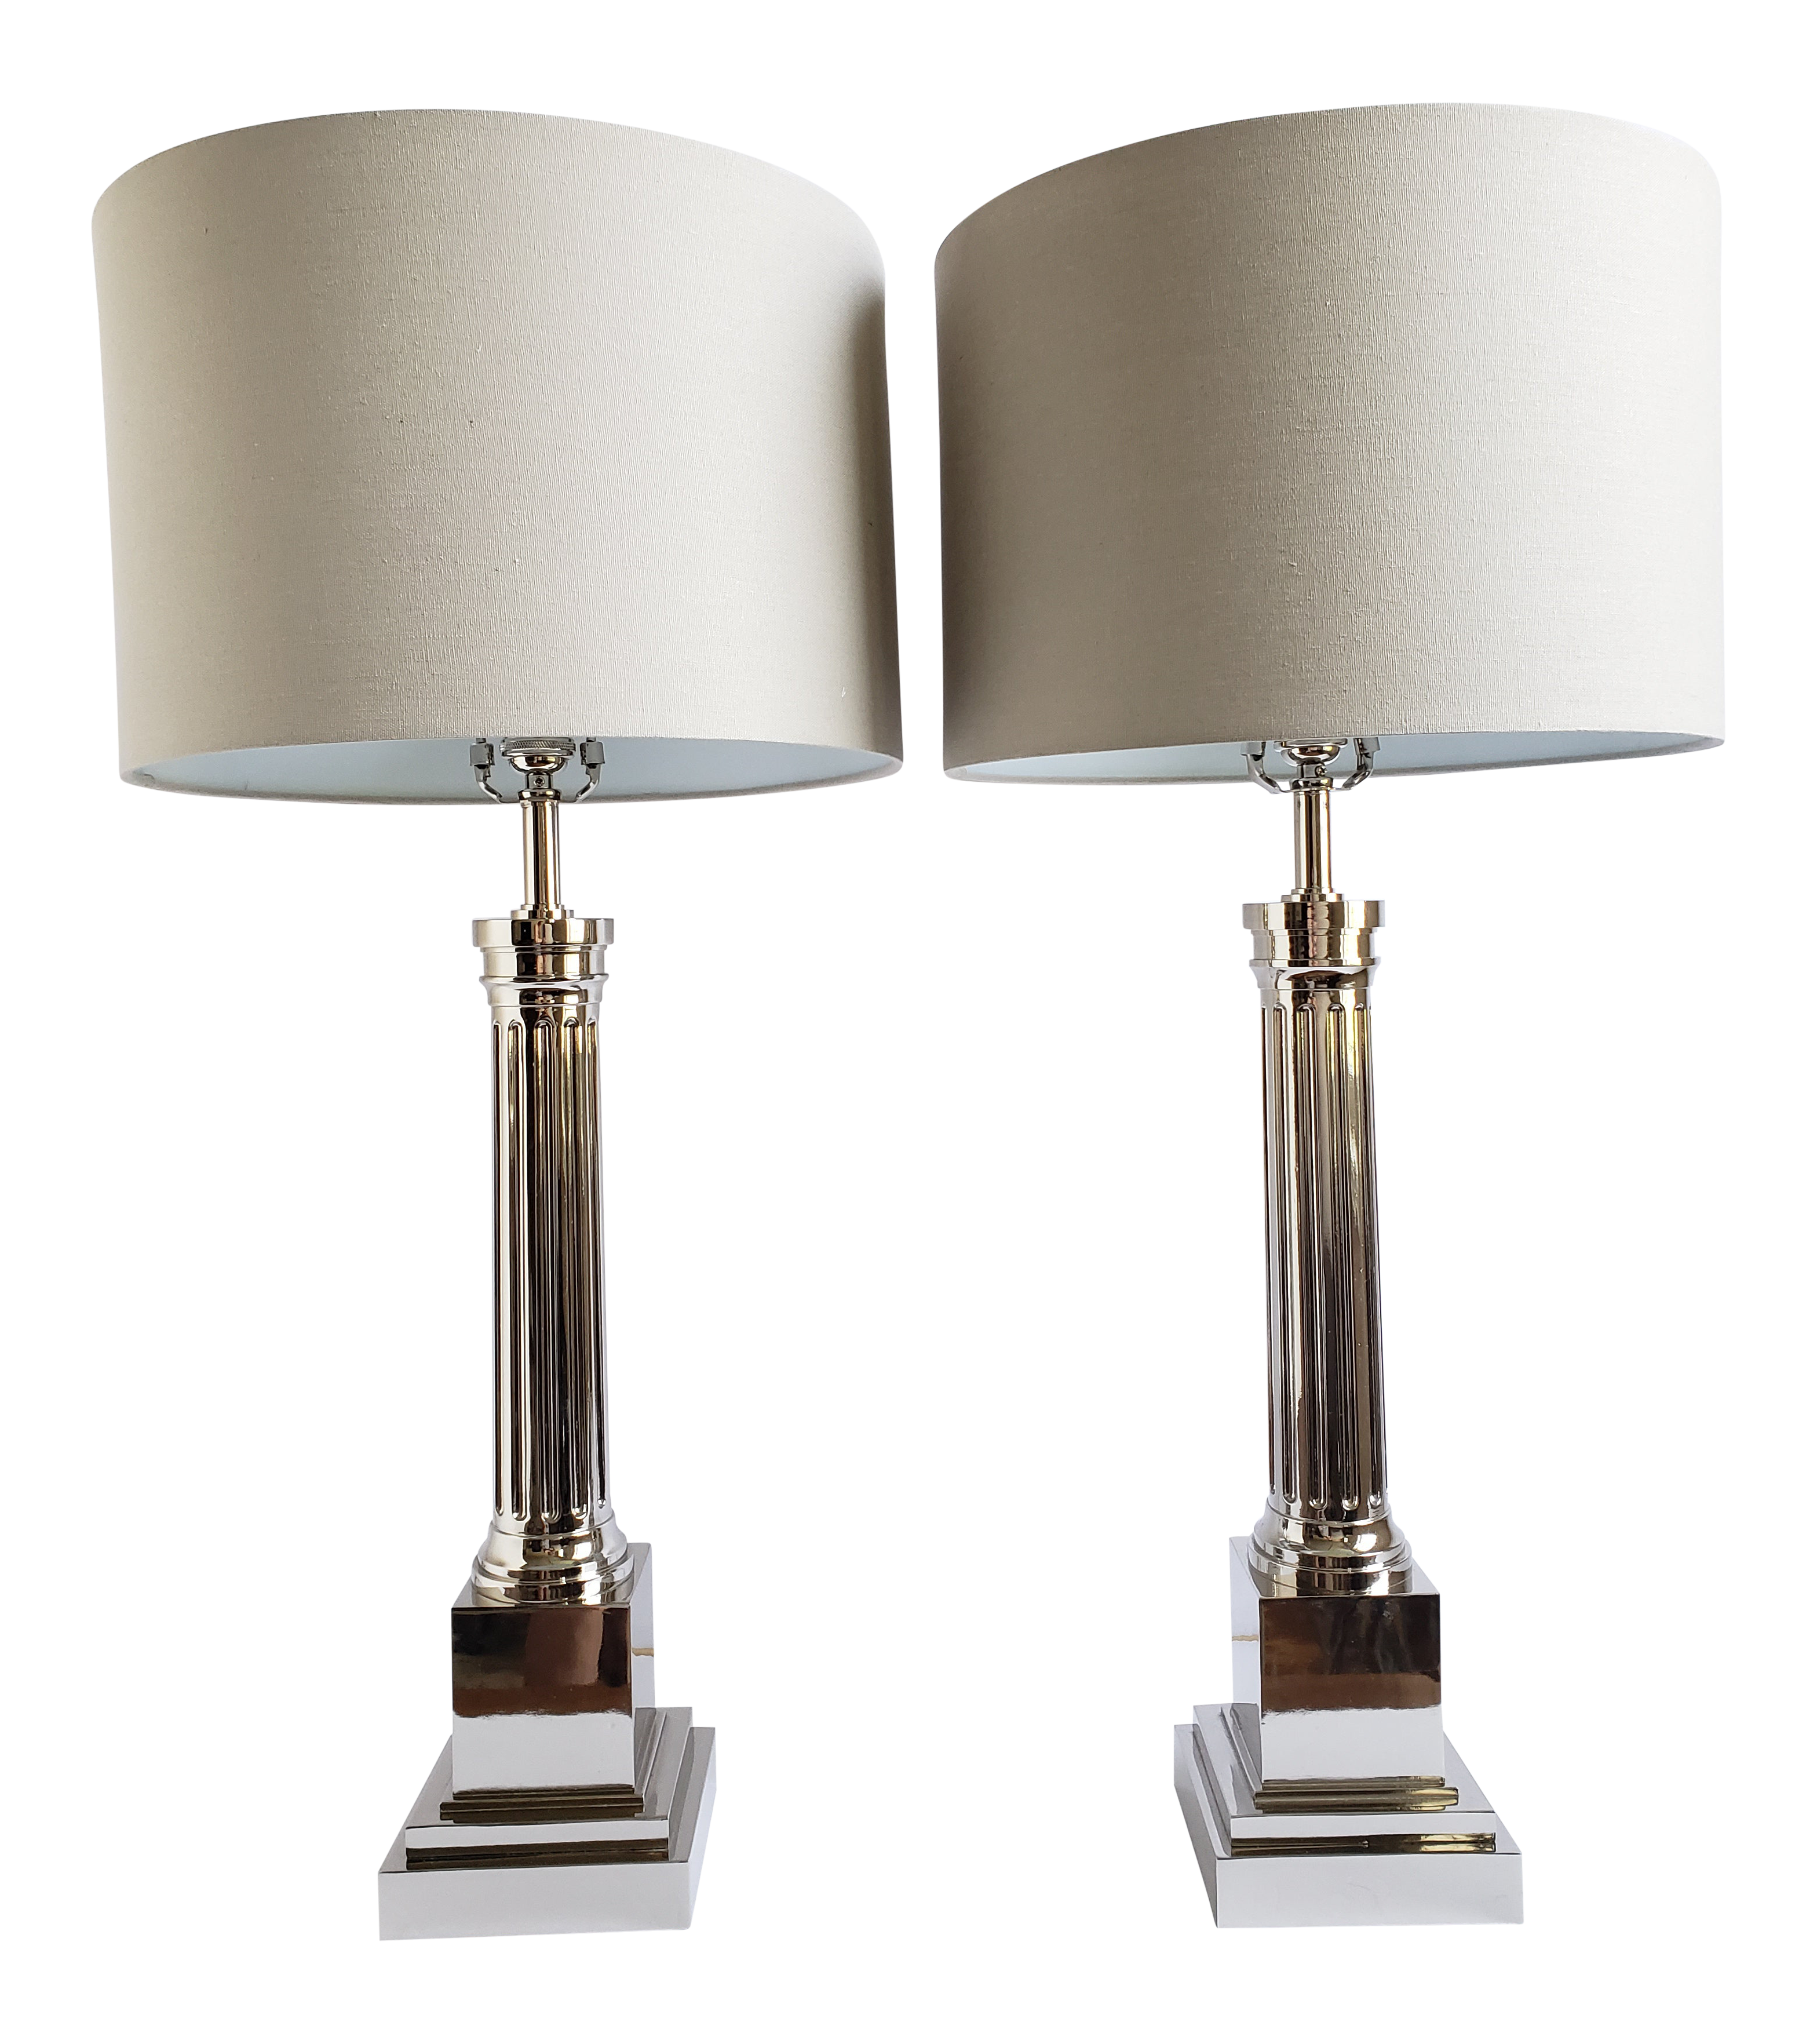 Marvelous Contemporary Chrome Plated Tall Table Lamps A Pair Download Free Architecture Designs Lectubocepmadebymaigaardcom